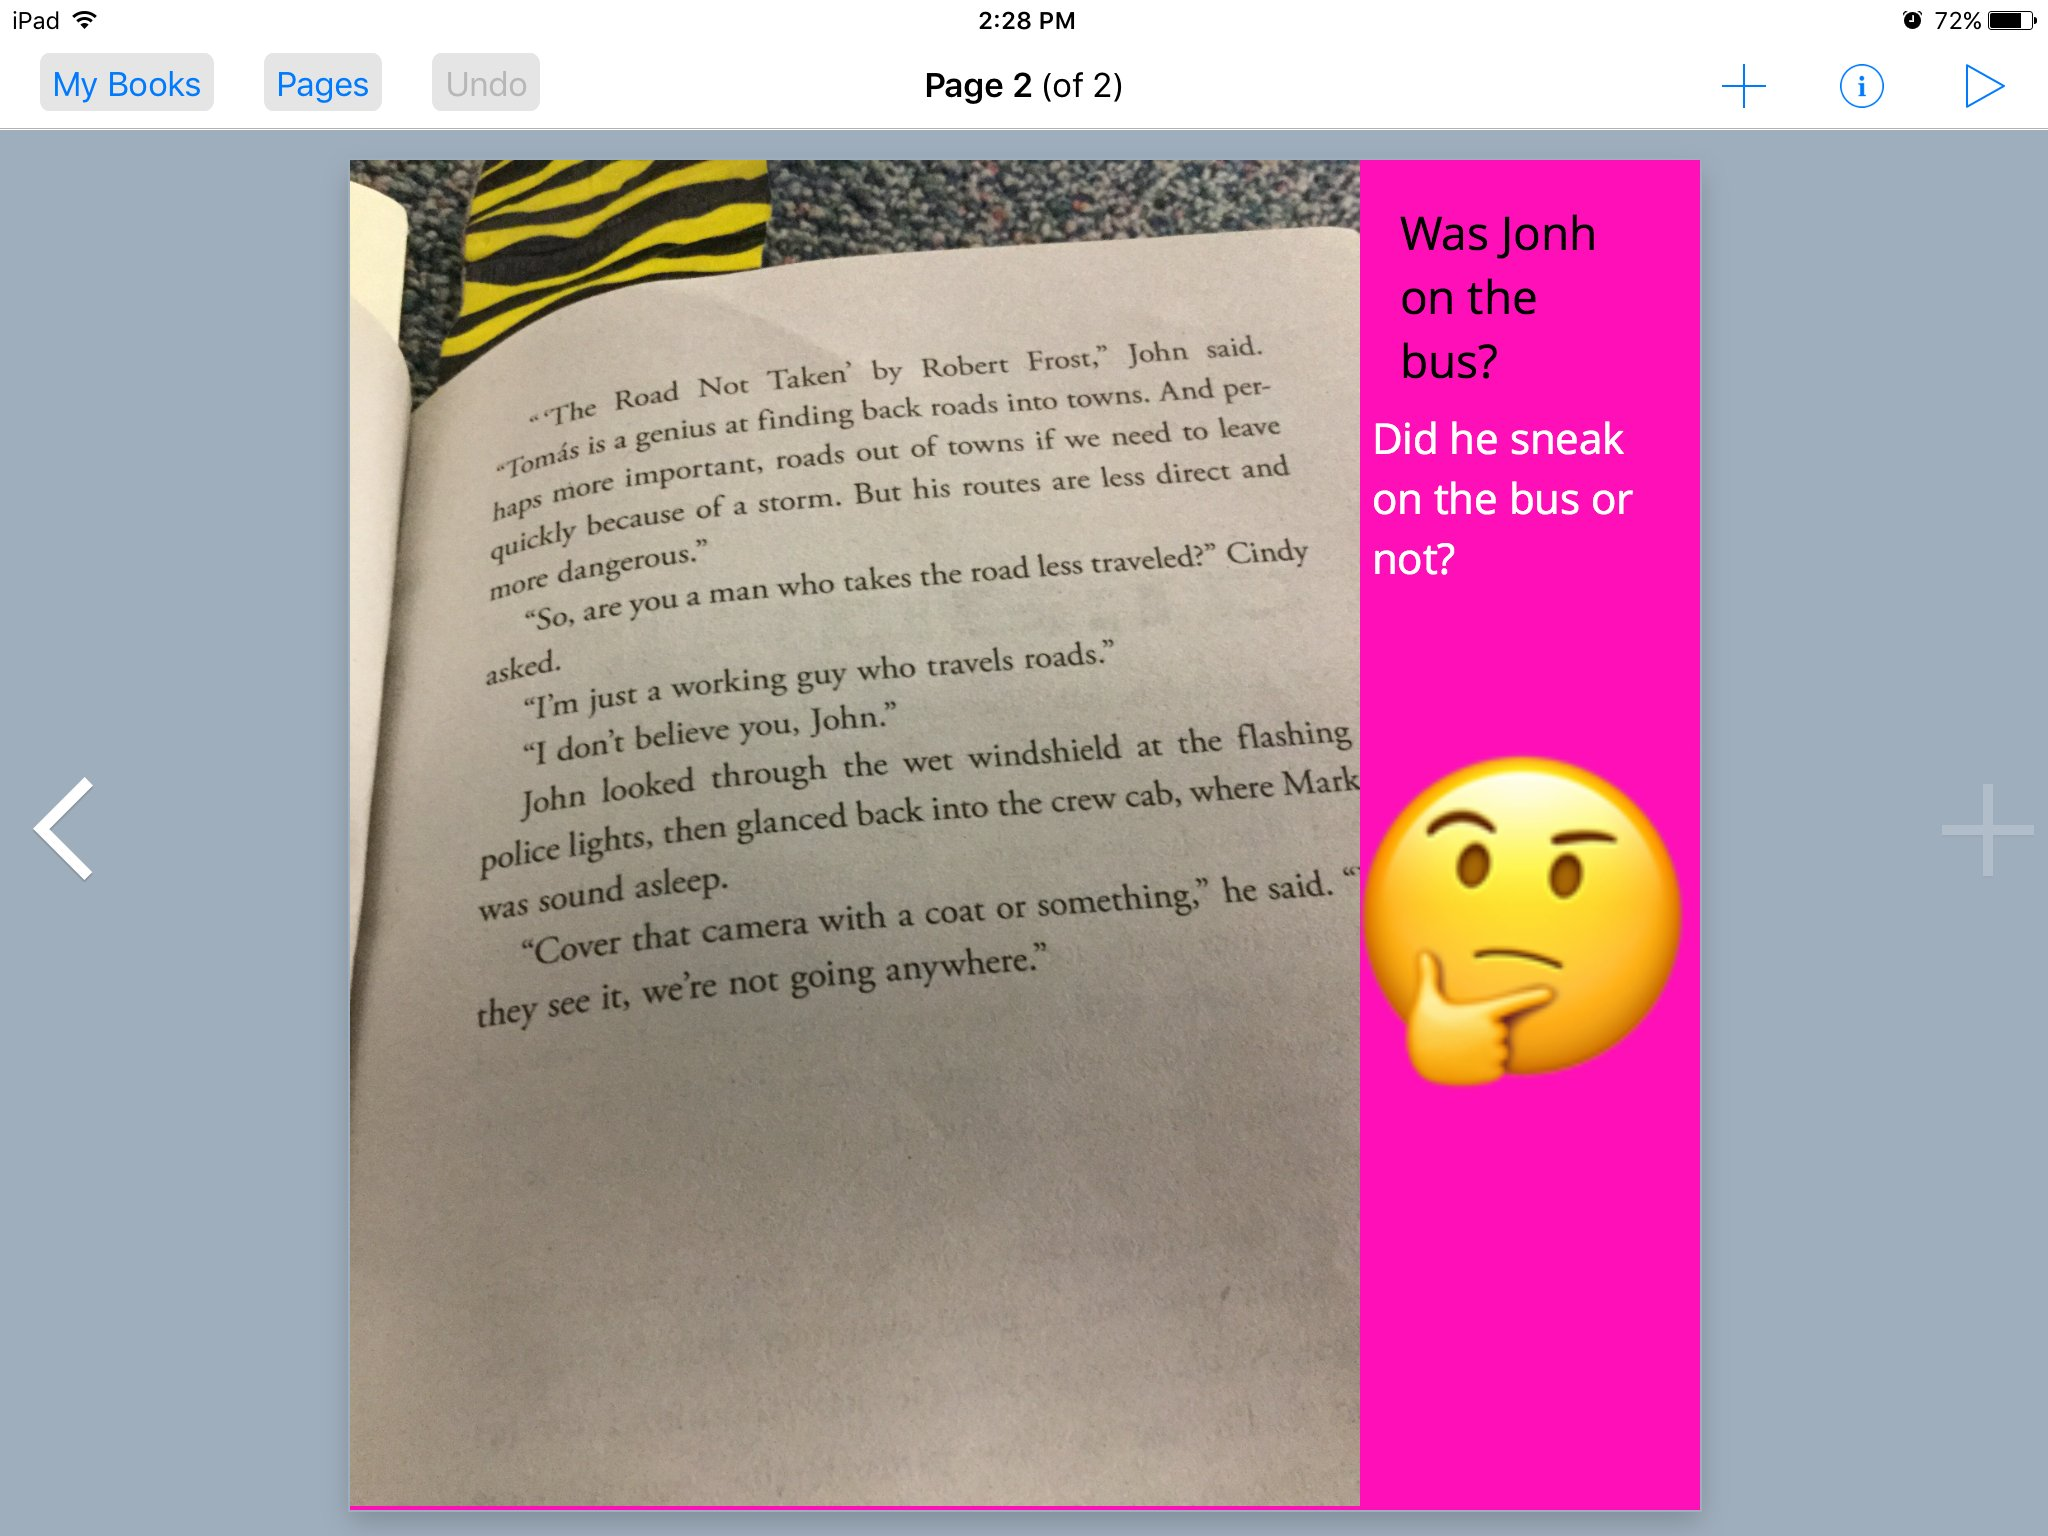 #booksnapswk2 #booksnaps KT_4Vo sharing Storm Runners by @rolandCSmith @kerrvand #betl https://t.co/goh2AkcugZ